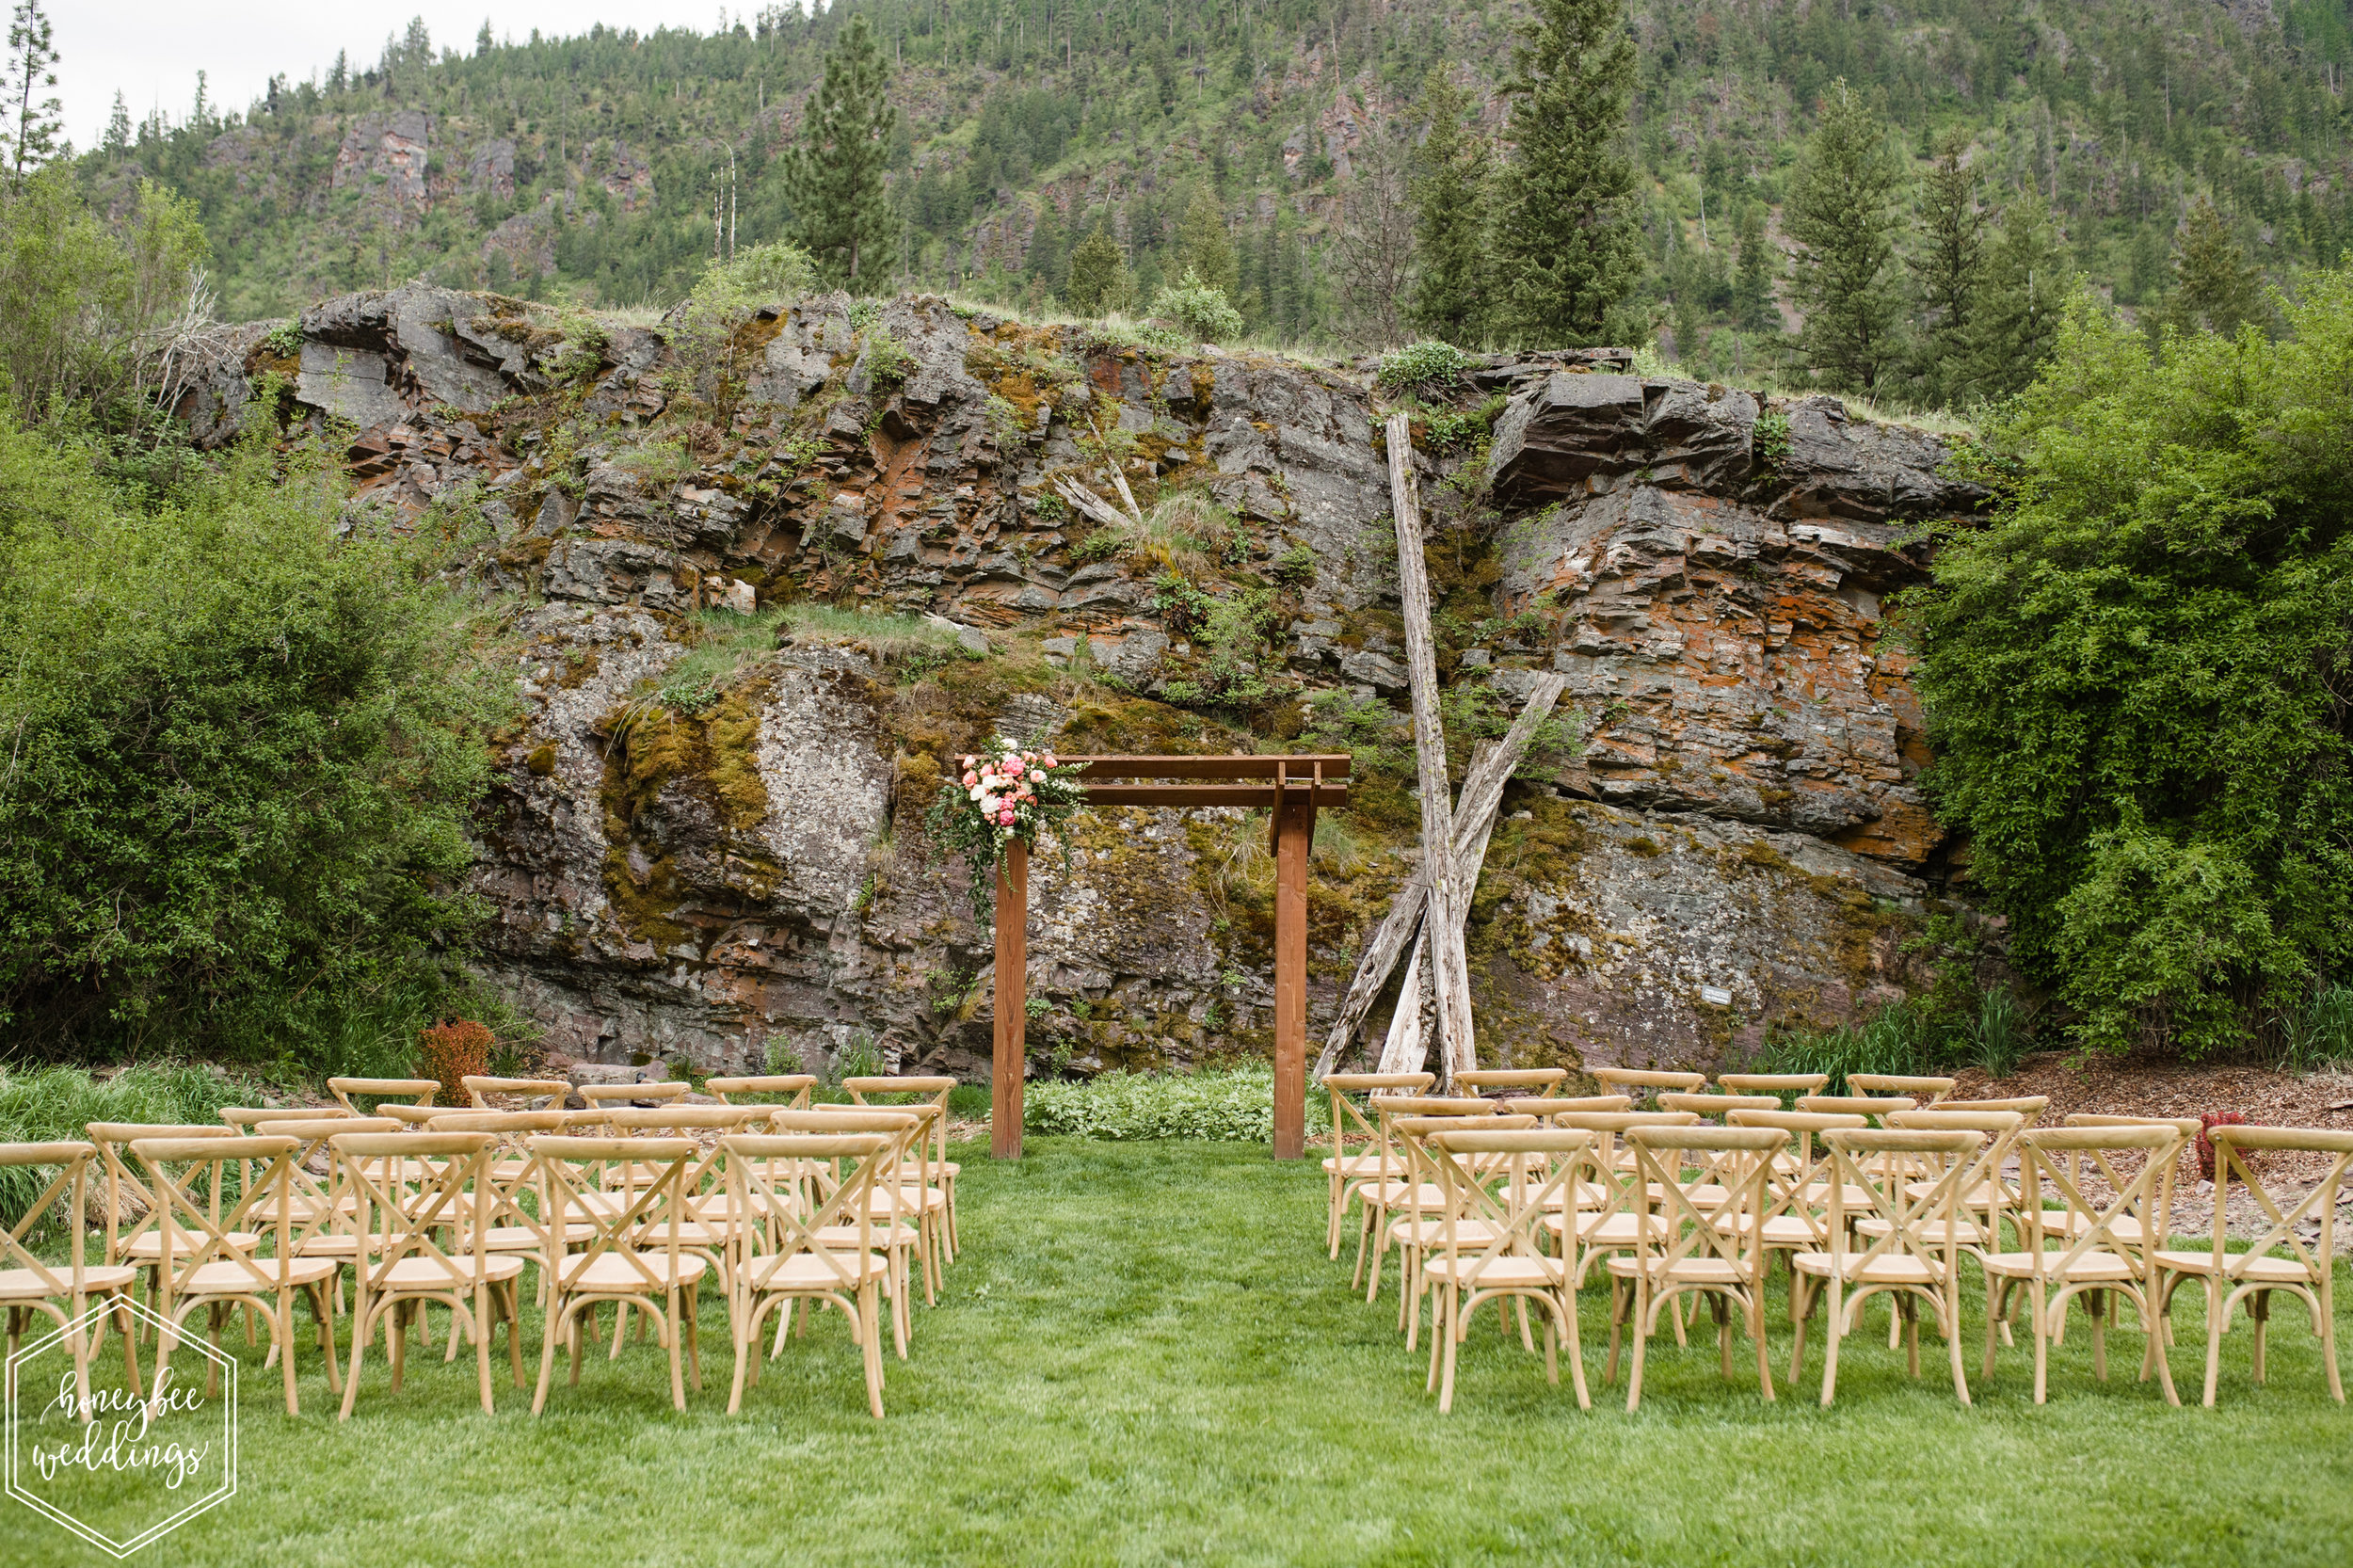 139Coral Mountain Wedding at White Raven_Honeybee Weddings_May 23, 2019-413.jpg